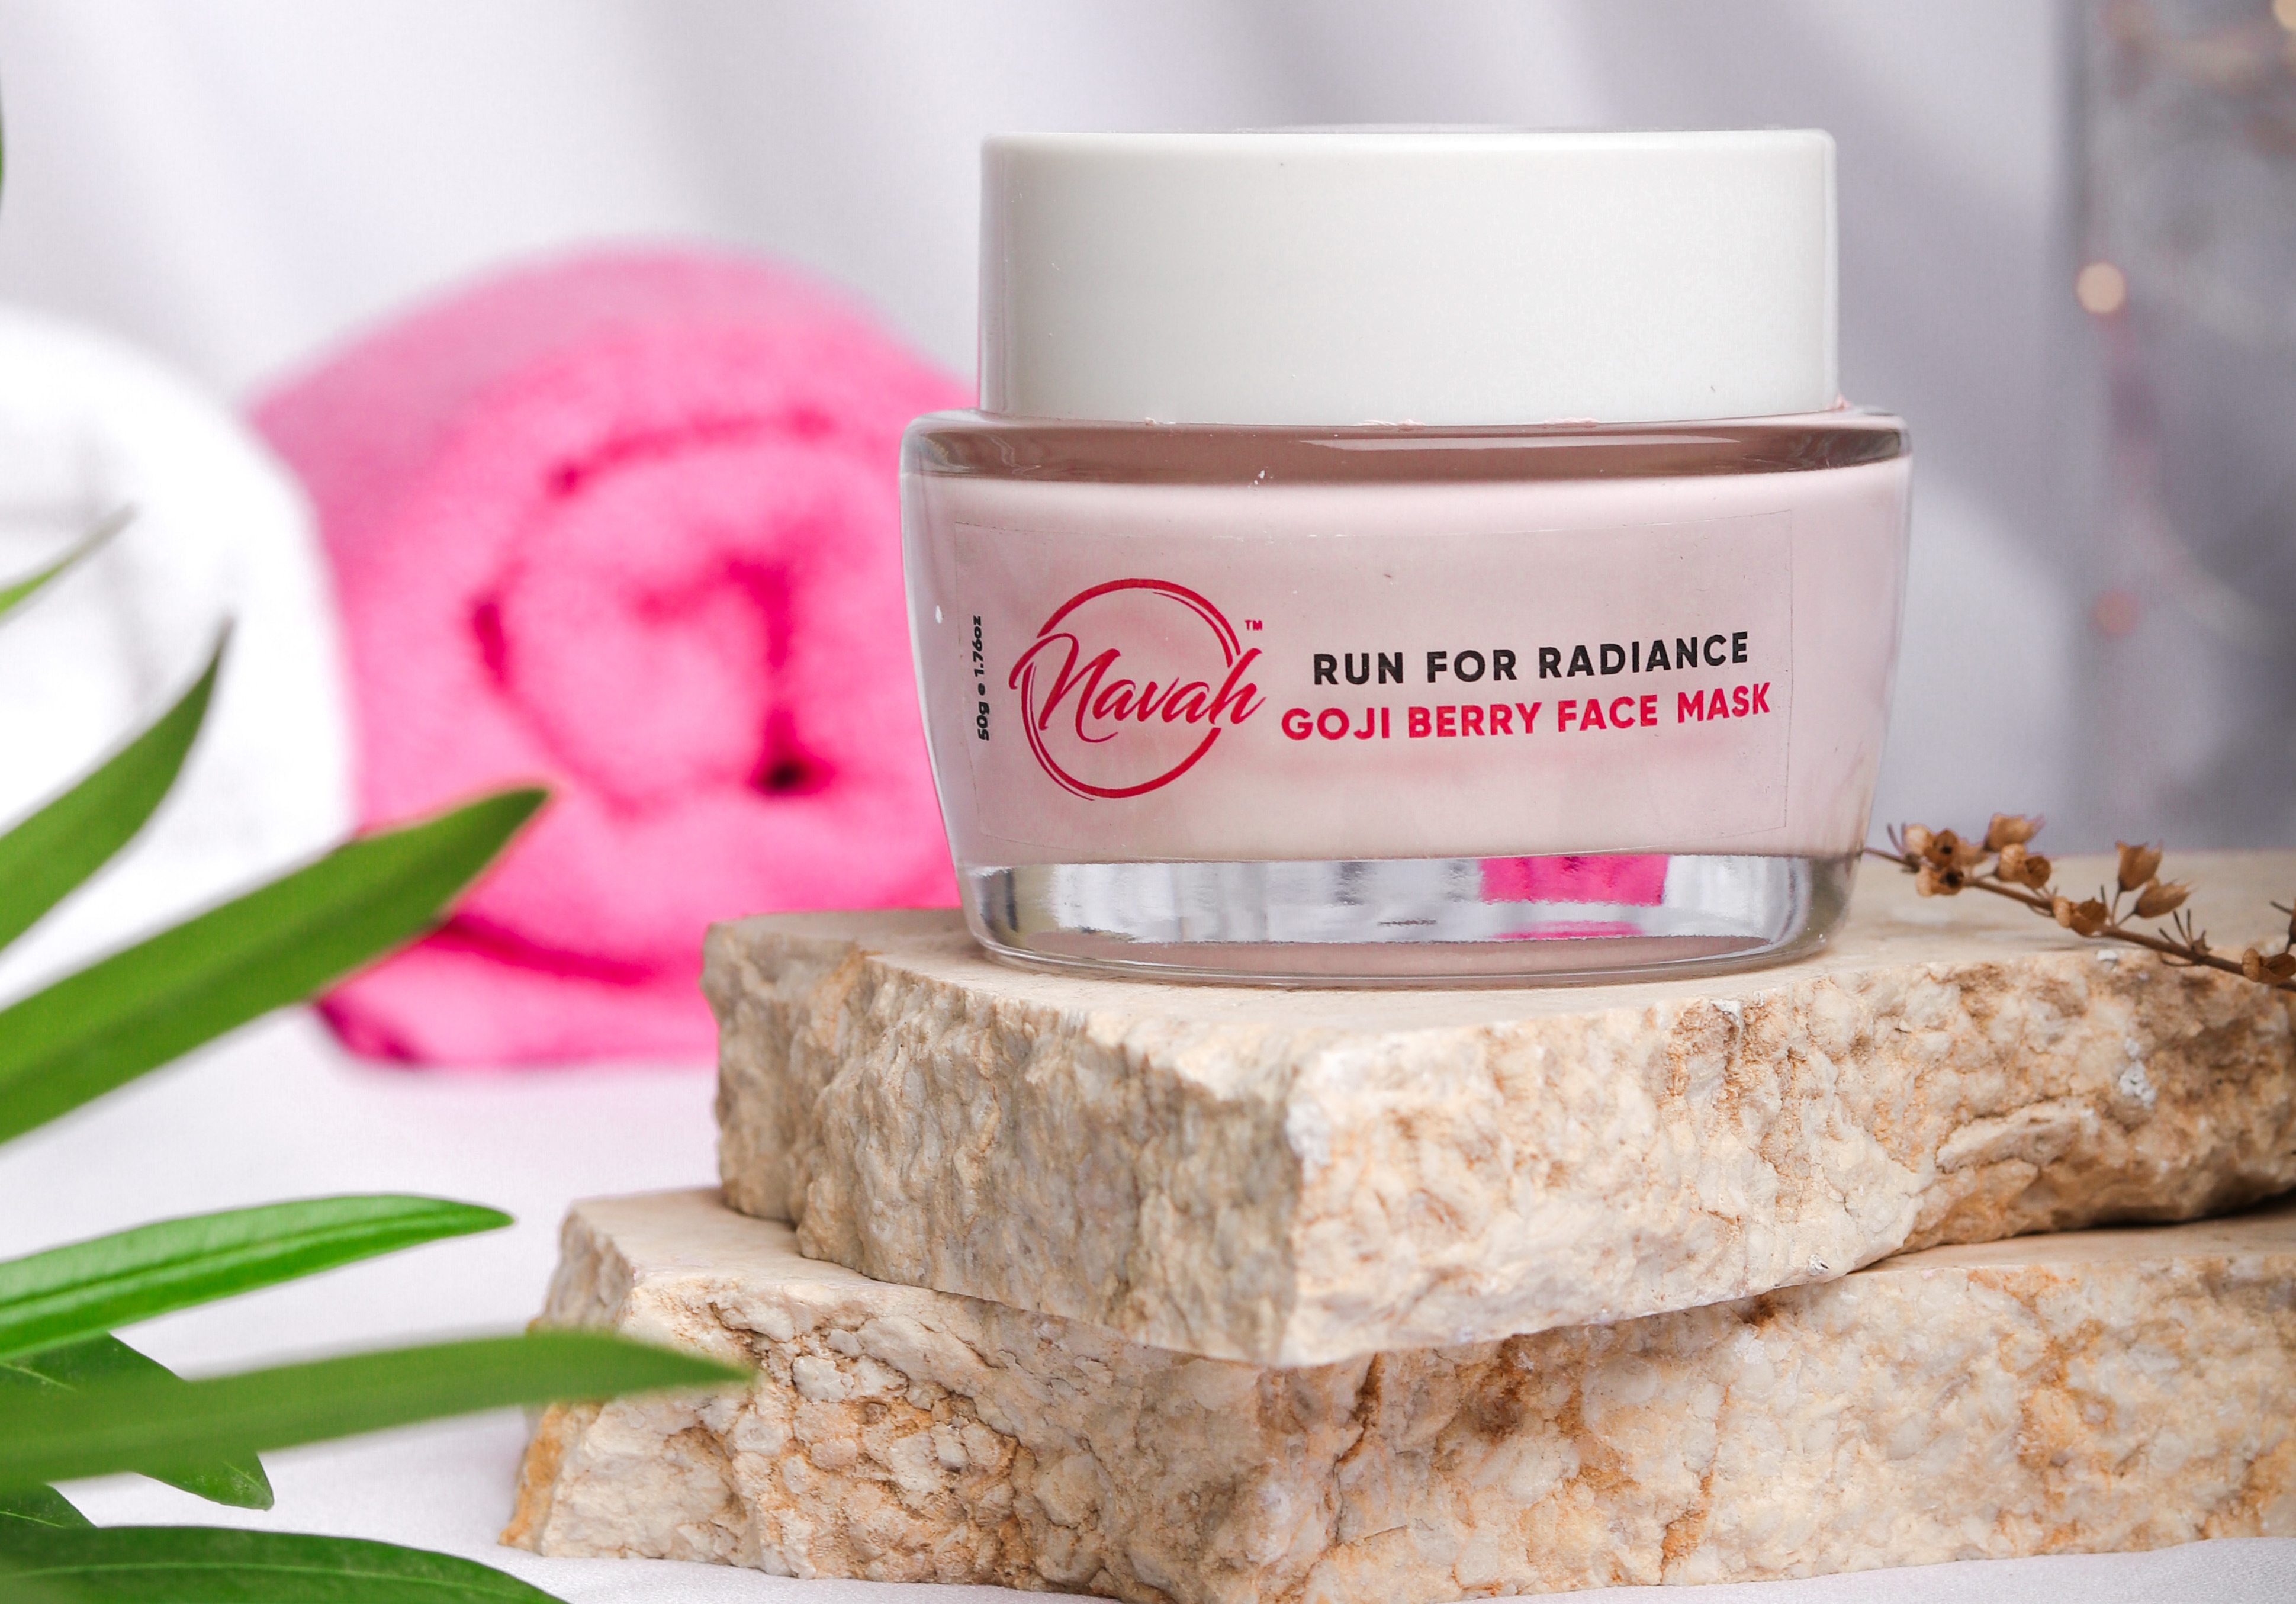 Use the face mask once a week for best results